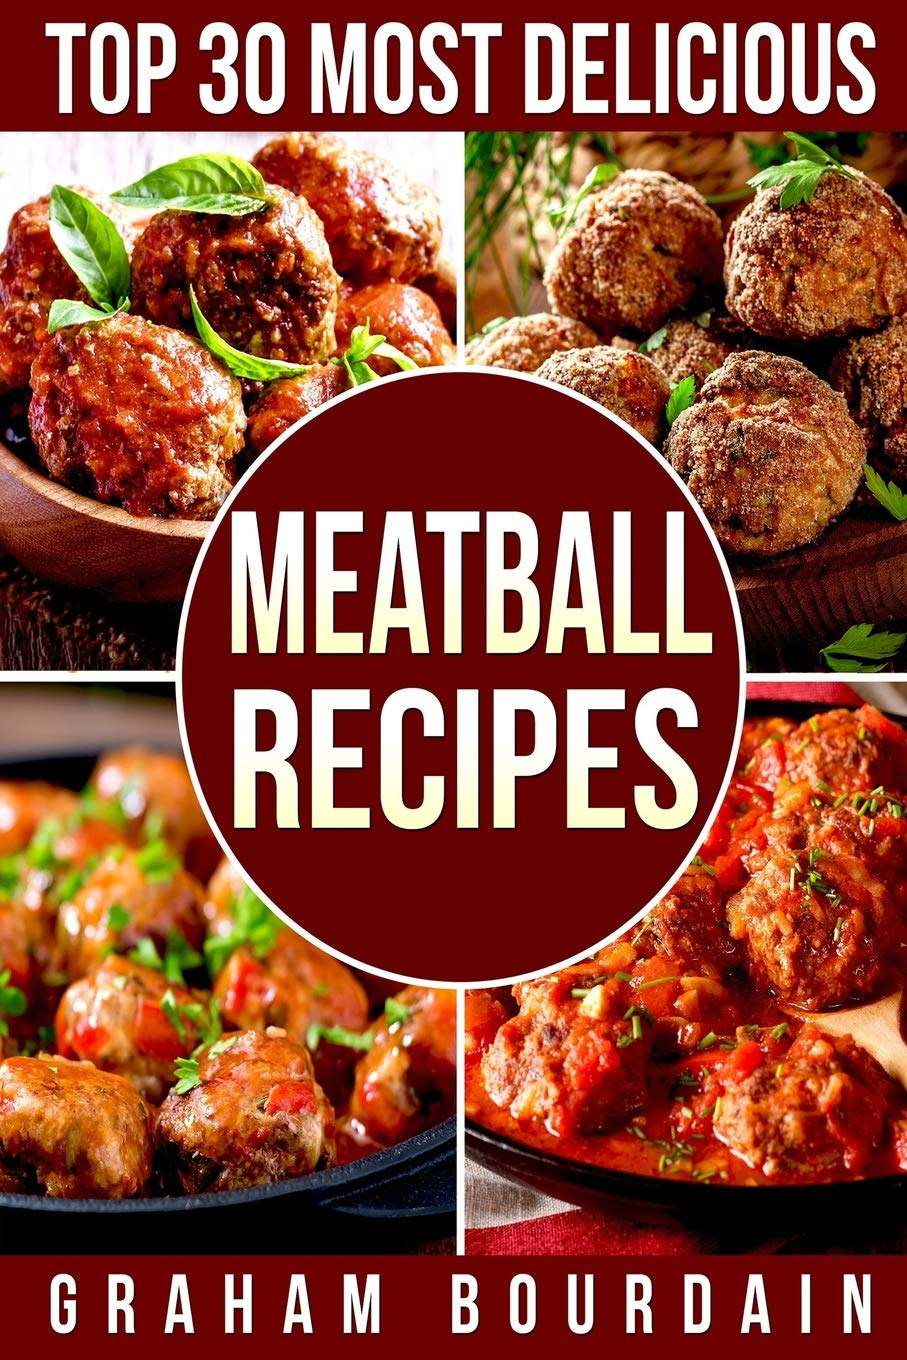 Top 30 Most Delicious Meatball Recipes: A Meatball Cookbook with Beef, Pork, Veal, Lamb, Bison, Chicken and Turkey - [Books on Quick and Easy Meals] (Top 30 Most Delicious Recipes Book 4) (Volume 4) pdf